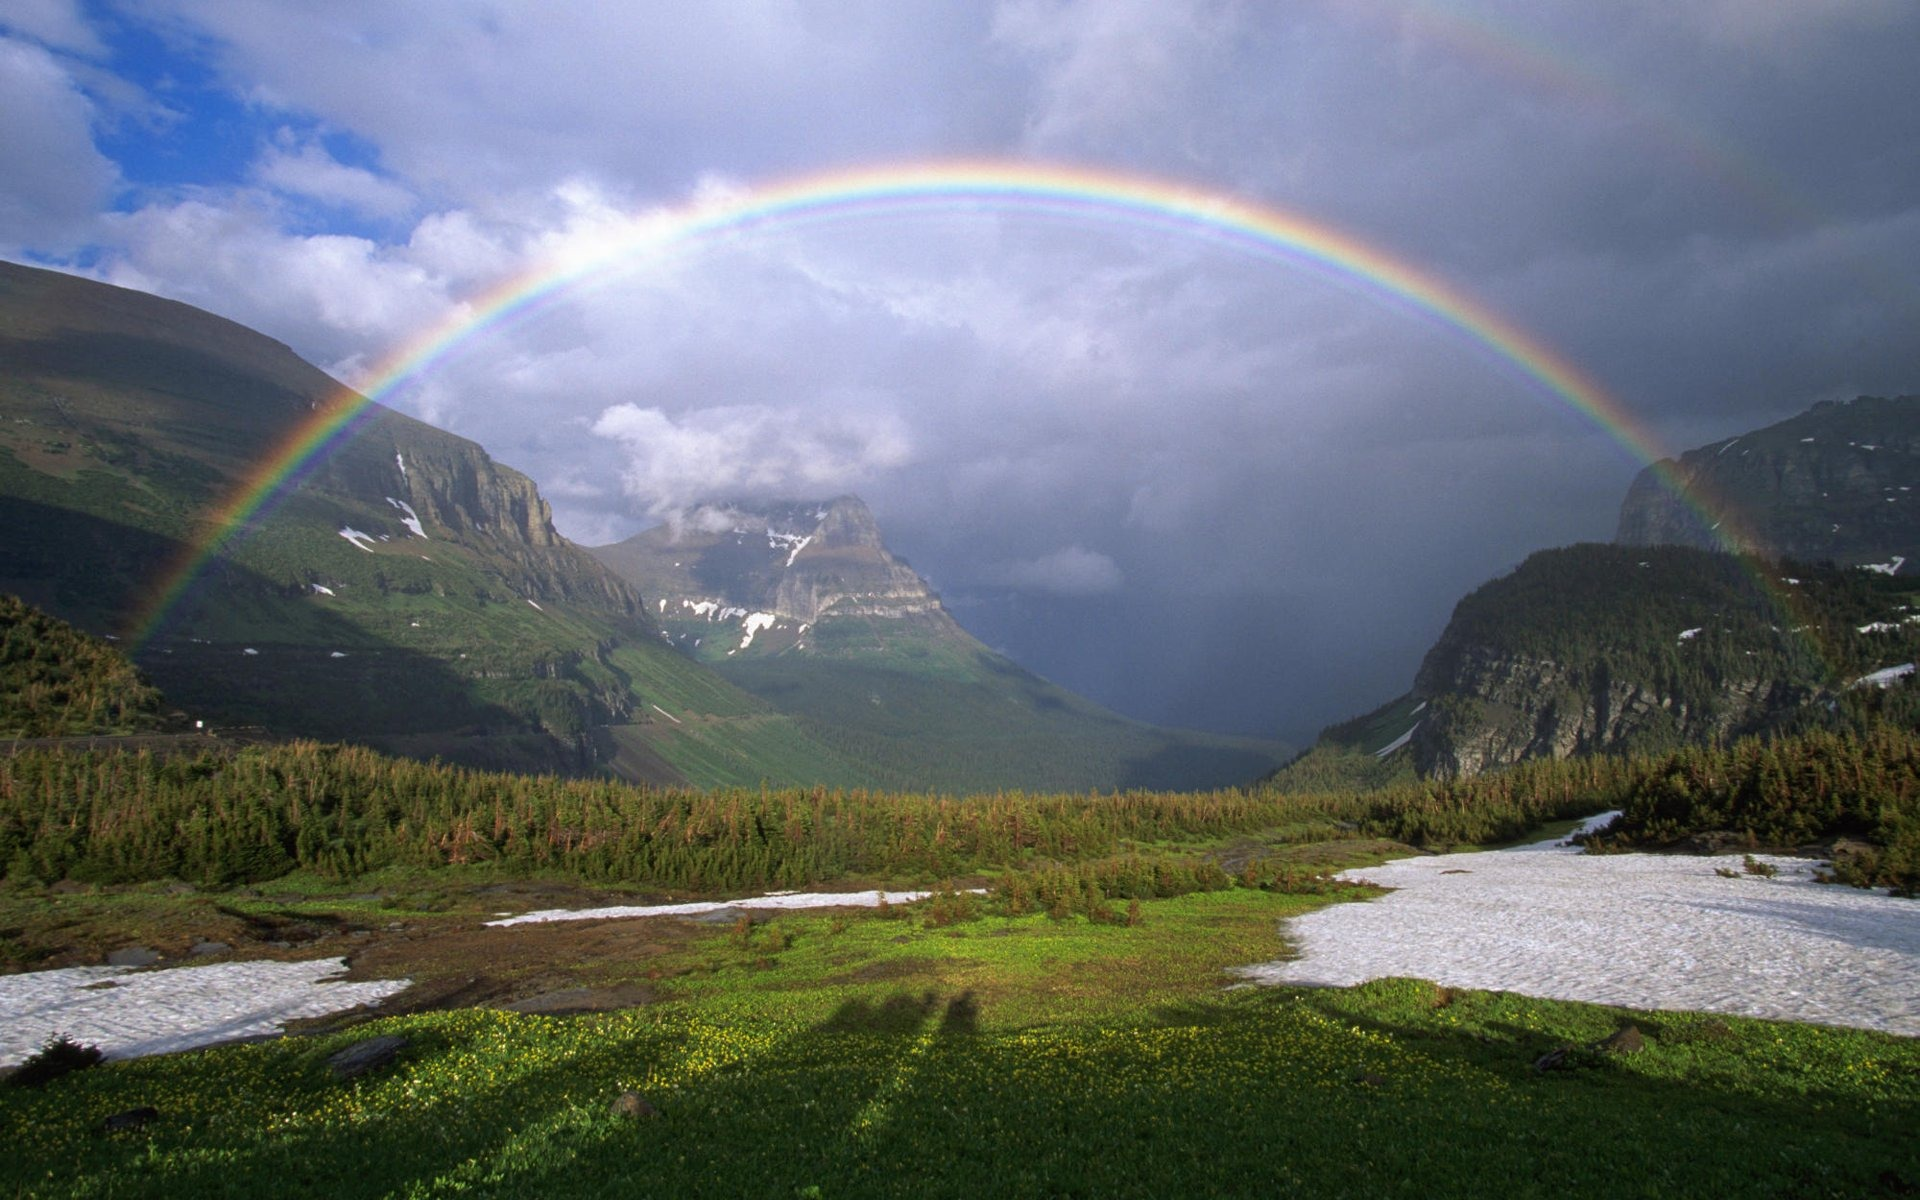 Picturesque High Resolution Rainbow Background